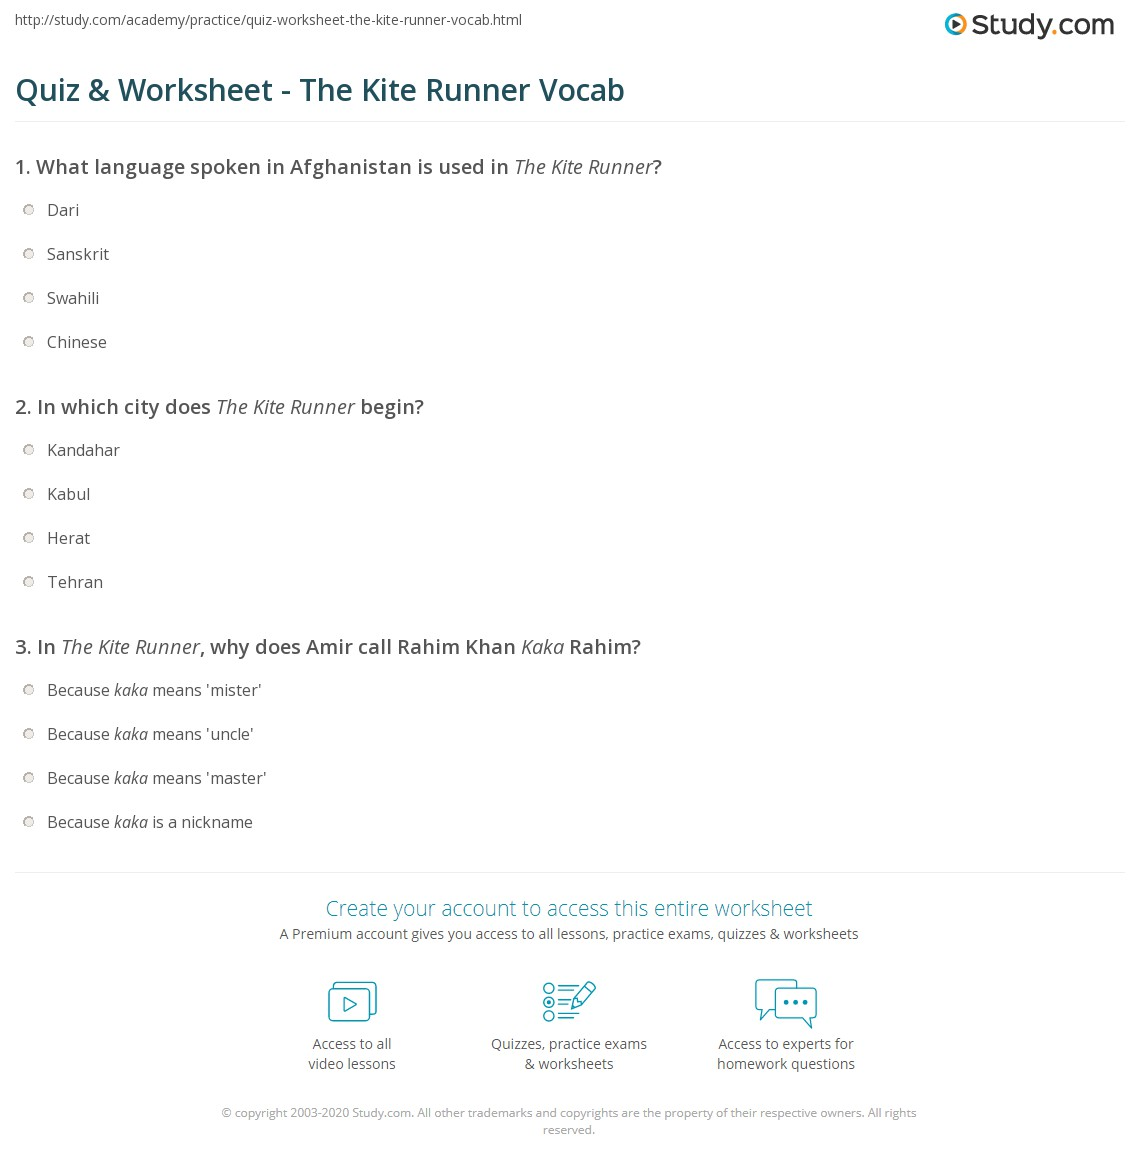 the kite runner analysis essay quiz worksheet the kite runner  quiz worksheet the kite runner vocab com print the kite runner vocabulary worksheet